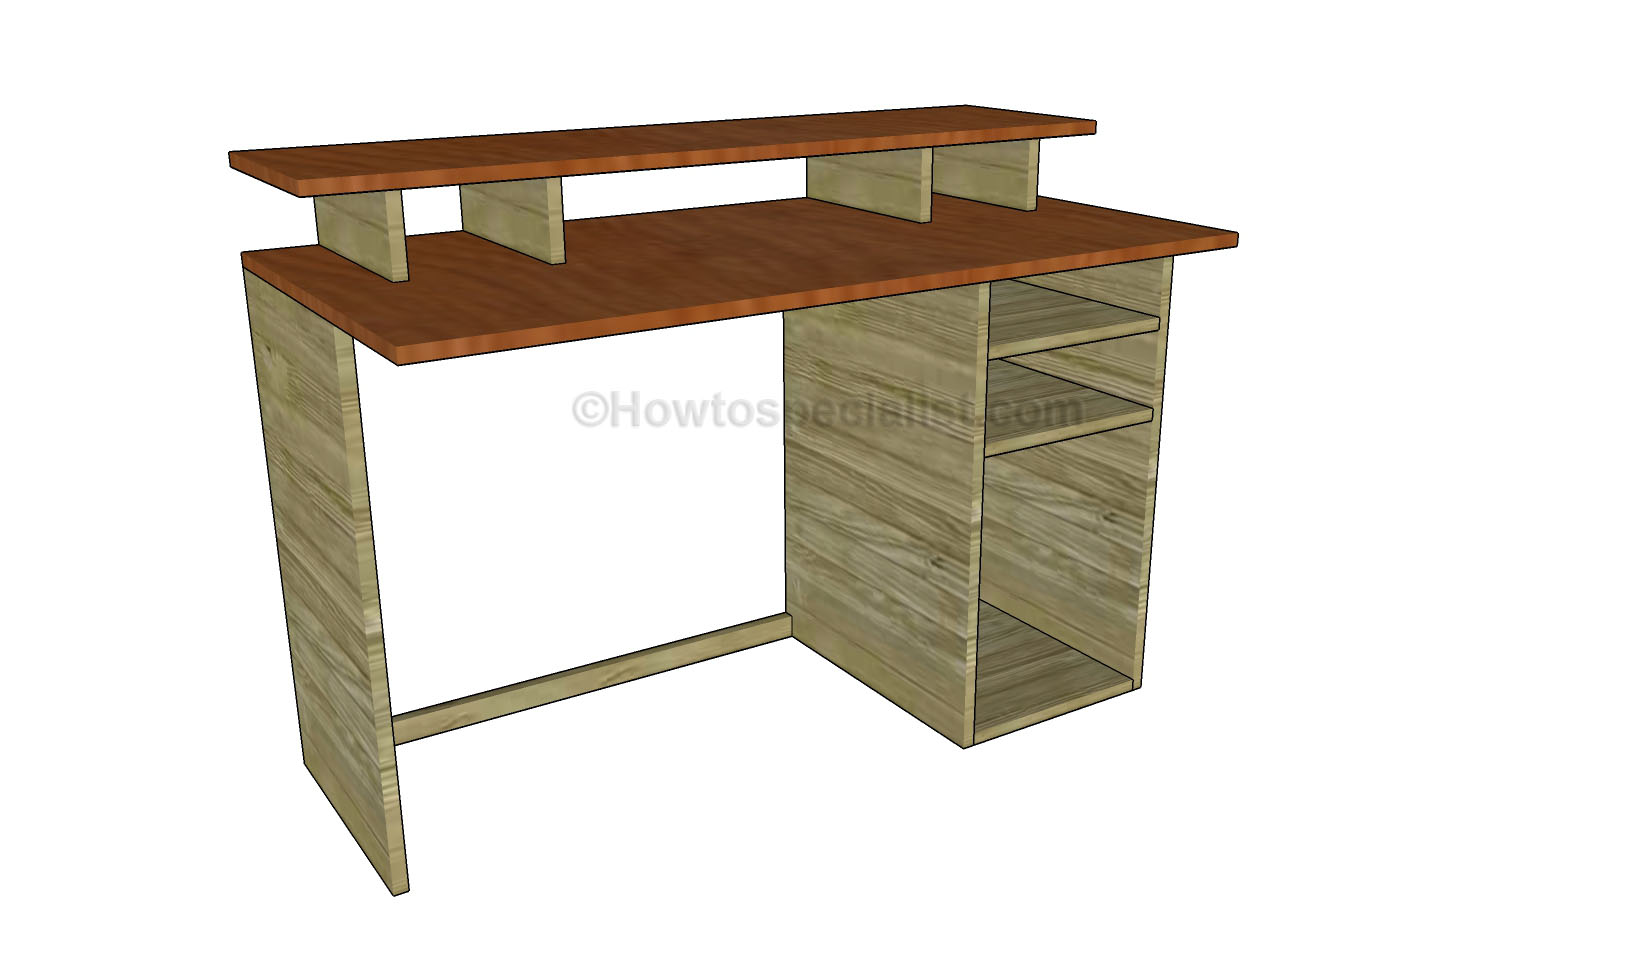 Build A Desk Plans Free | Beginner Woodworking Project